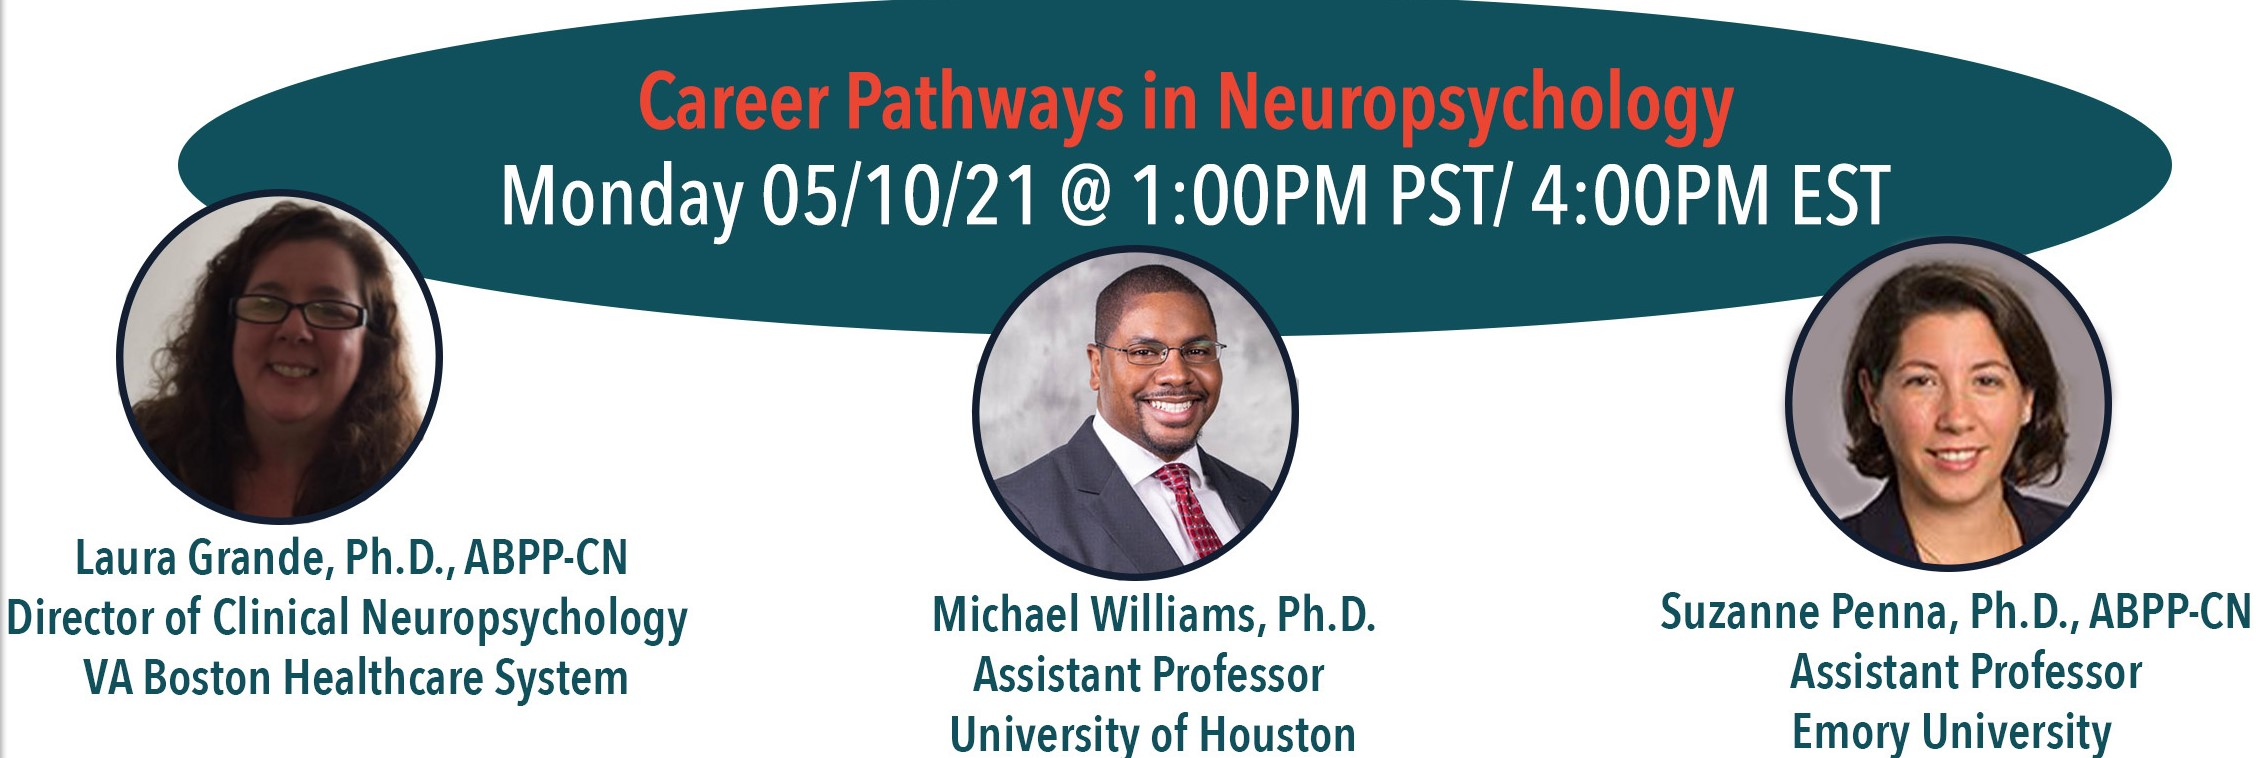 Career pathways in neuropsychology with Dr. Laura Grande, Dr. Michael Williams, and Dr. Suzanne Penna